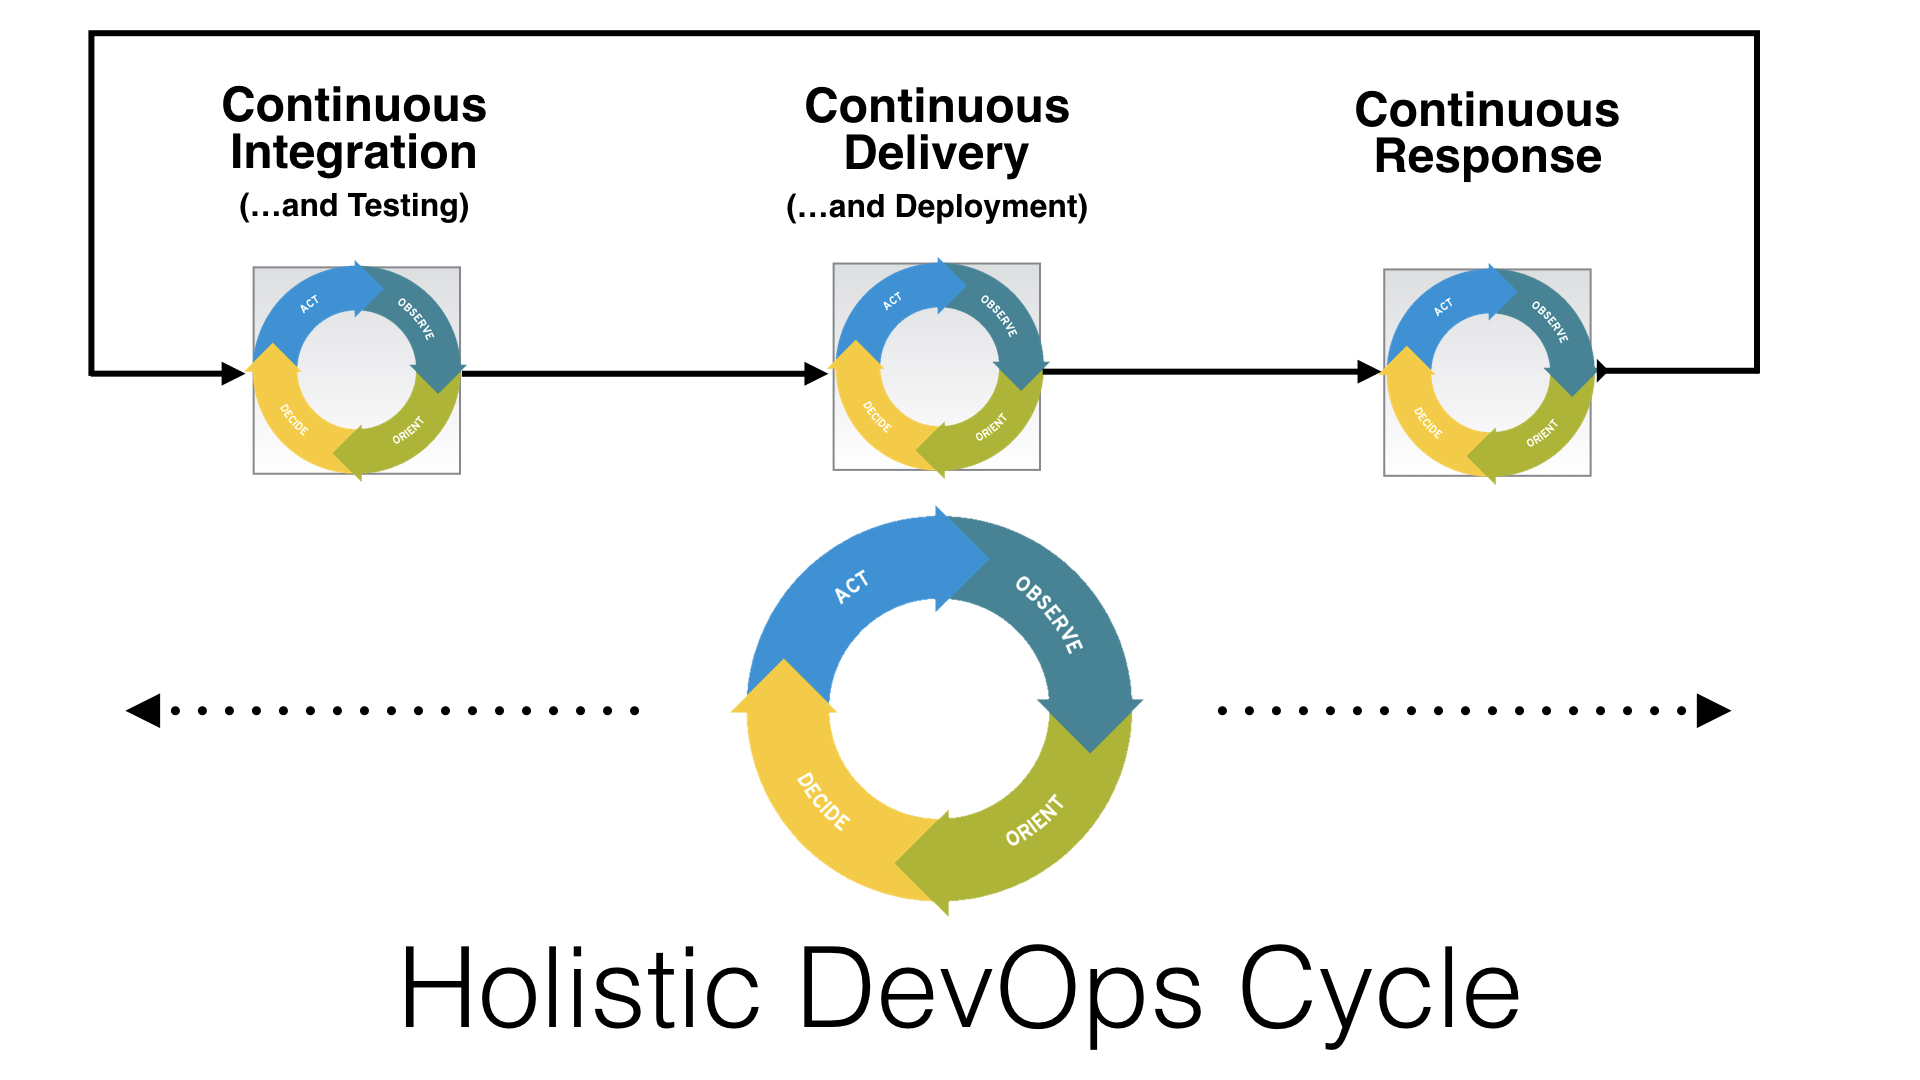 Holistic DevOps Cycle